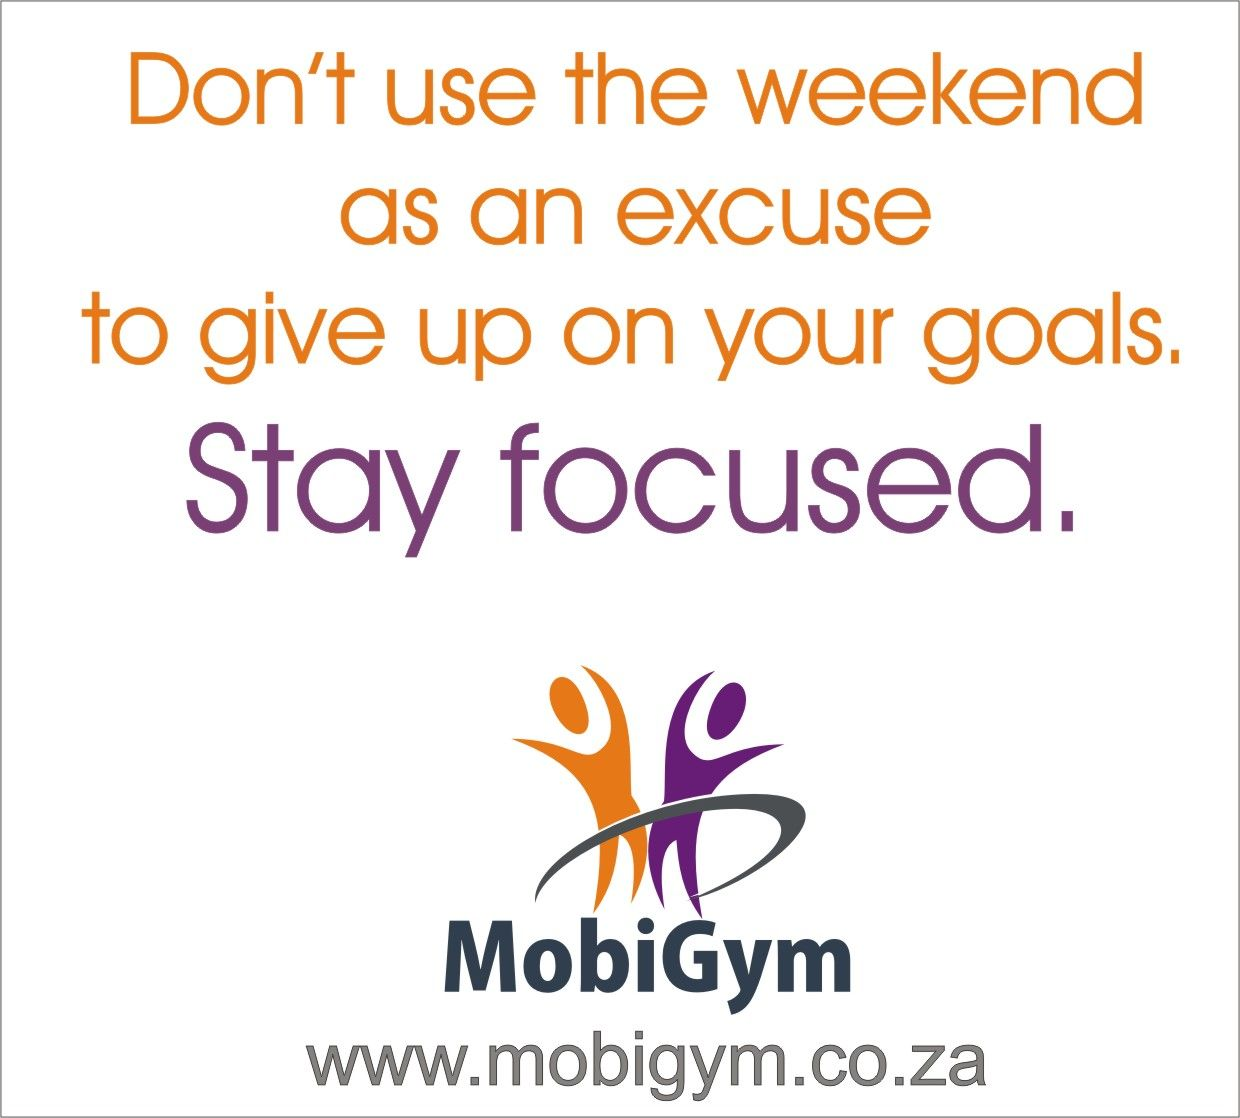 Stay focused on your goals. The weekend is no excuse to